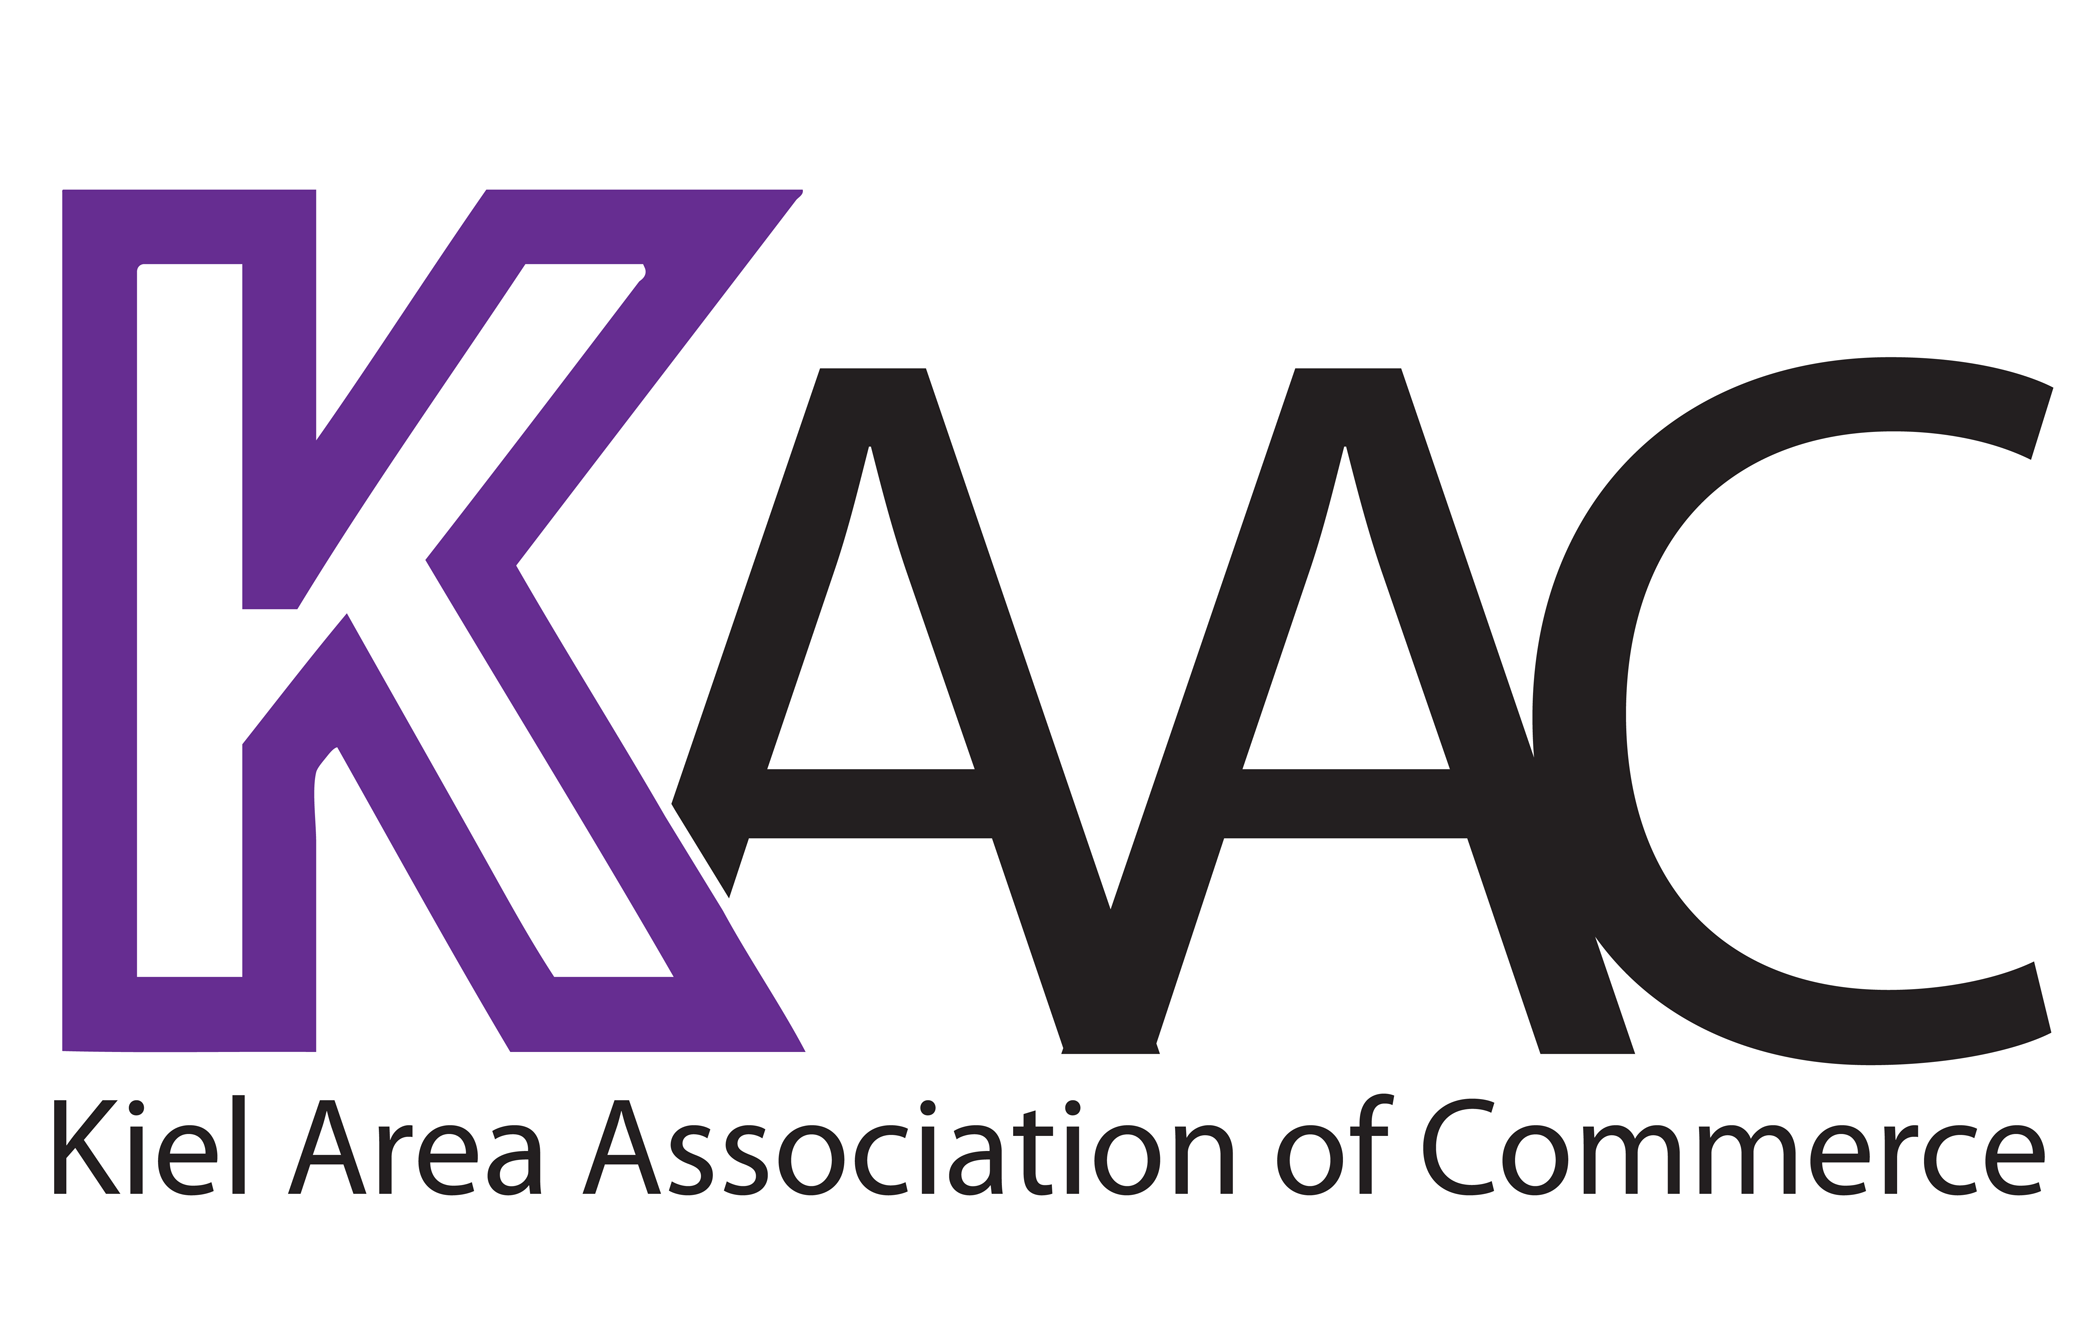 Kiel Area Association of Commerce